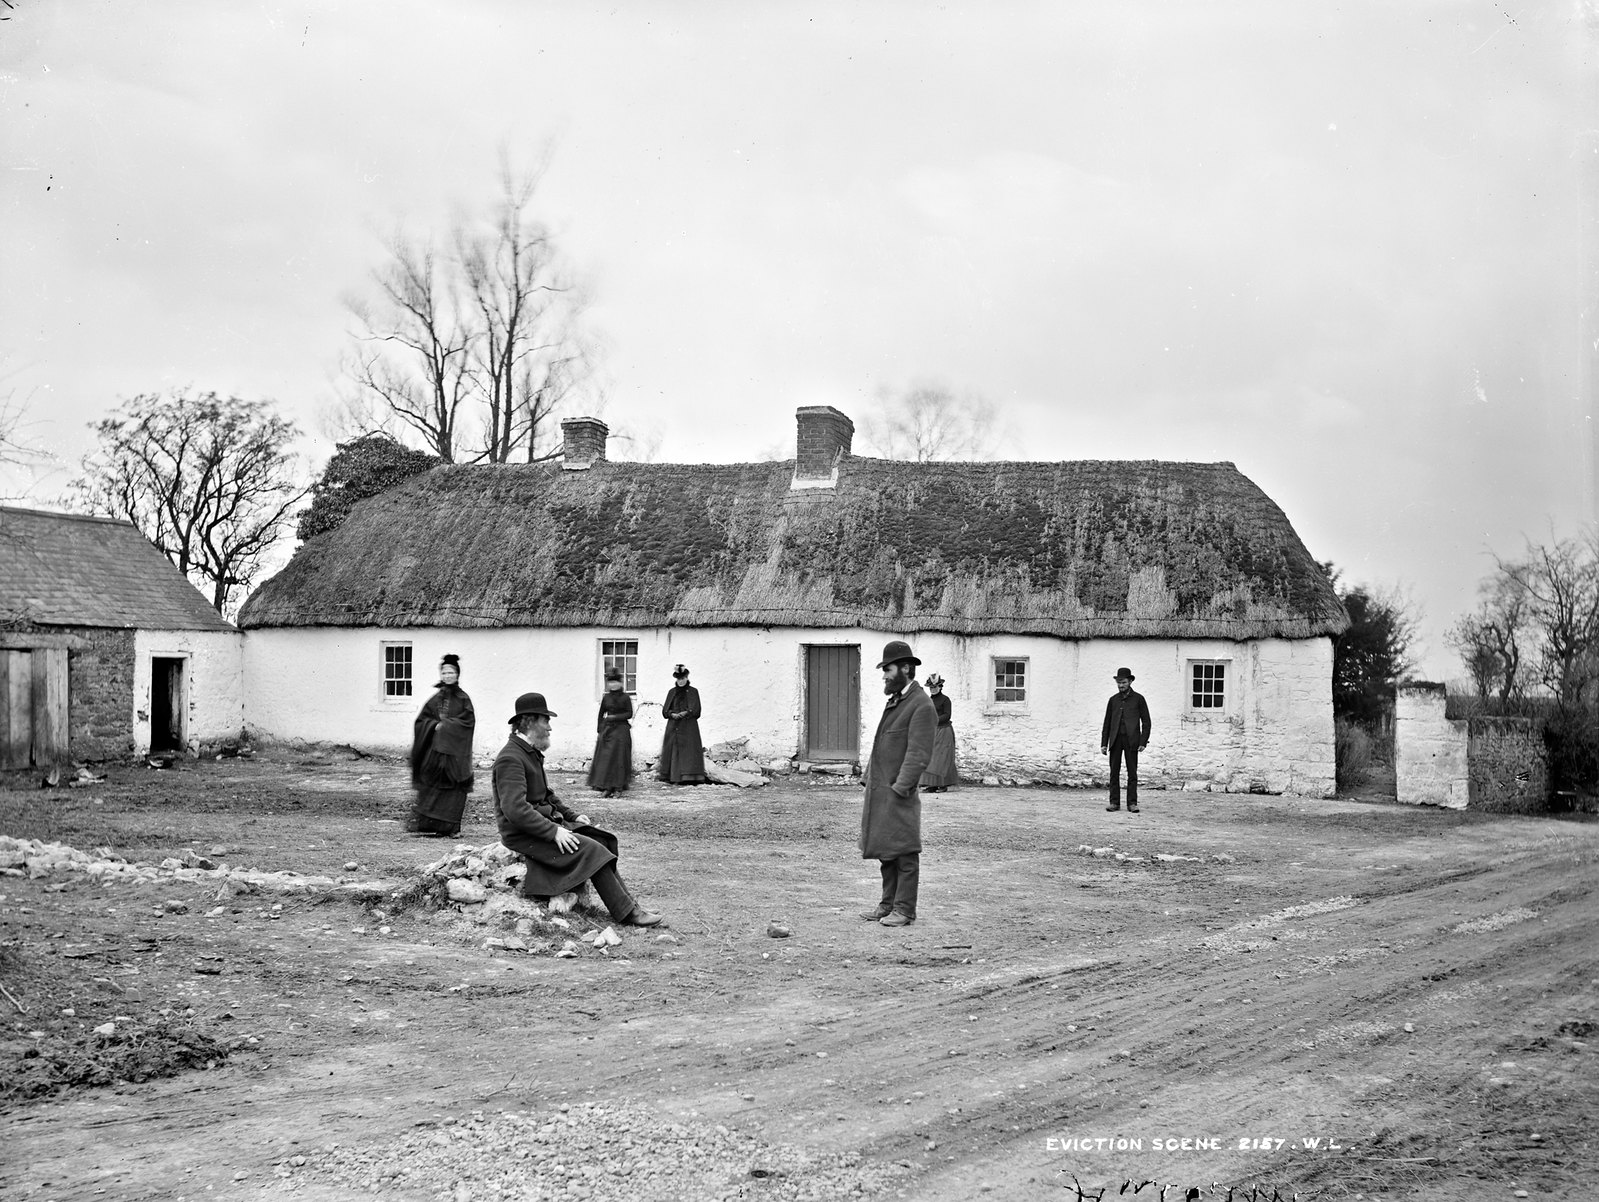 John and Andrew Fox's house, after eviction, Clongorey, Co.Kildare | by National Library of Ireland on The Commons